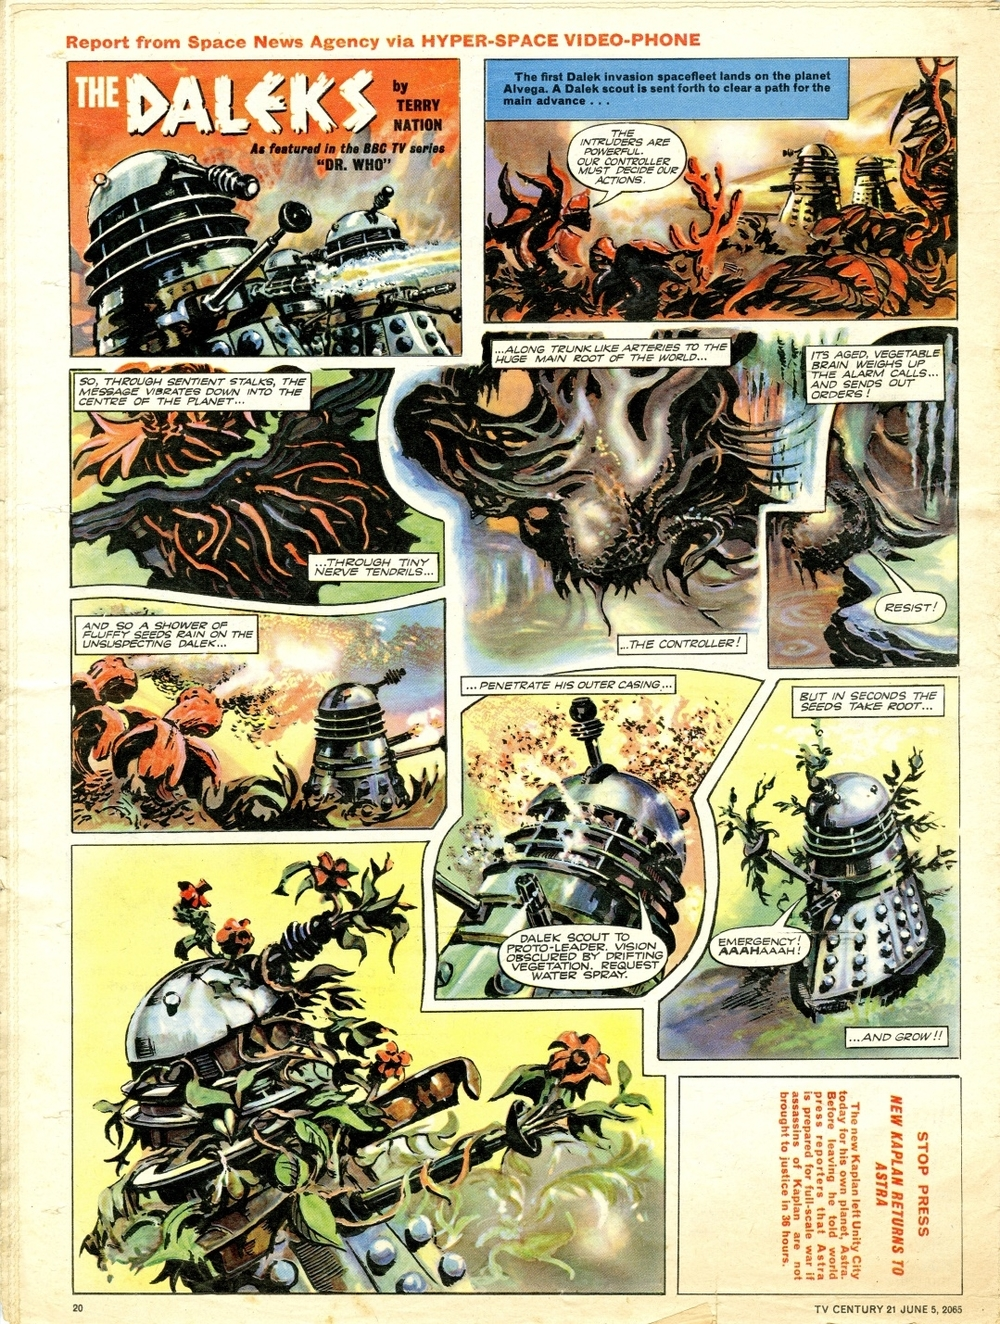 Dalek strip as published in TV Century 21 #20